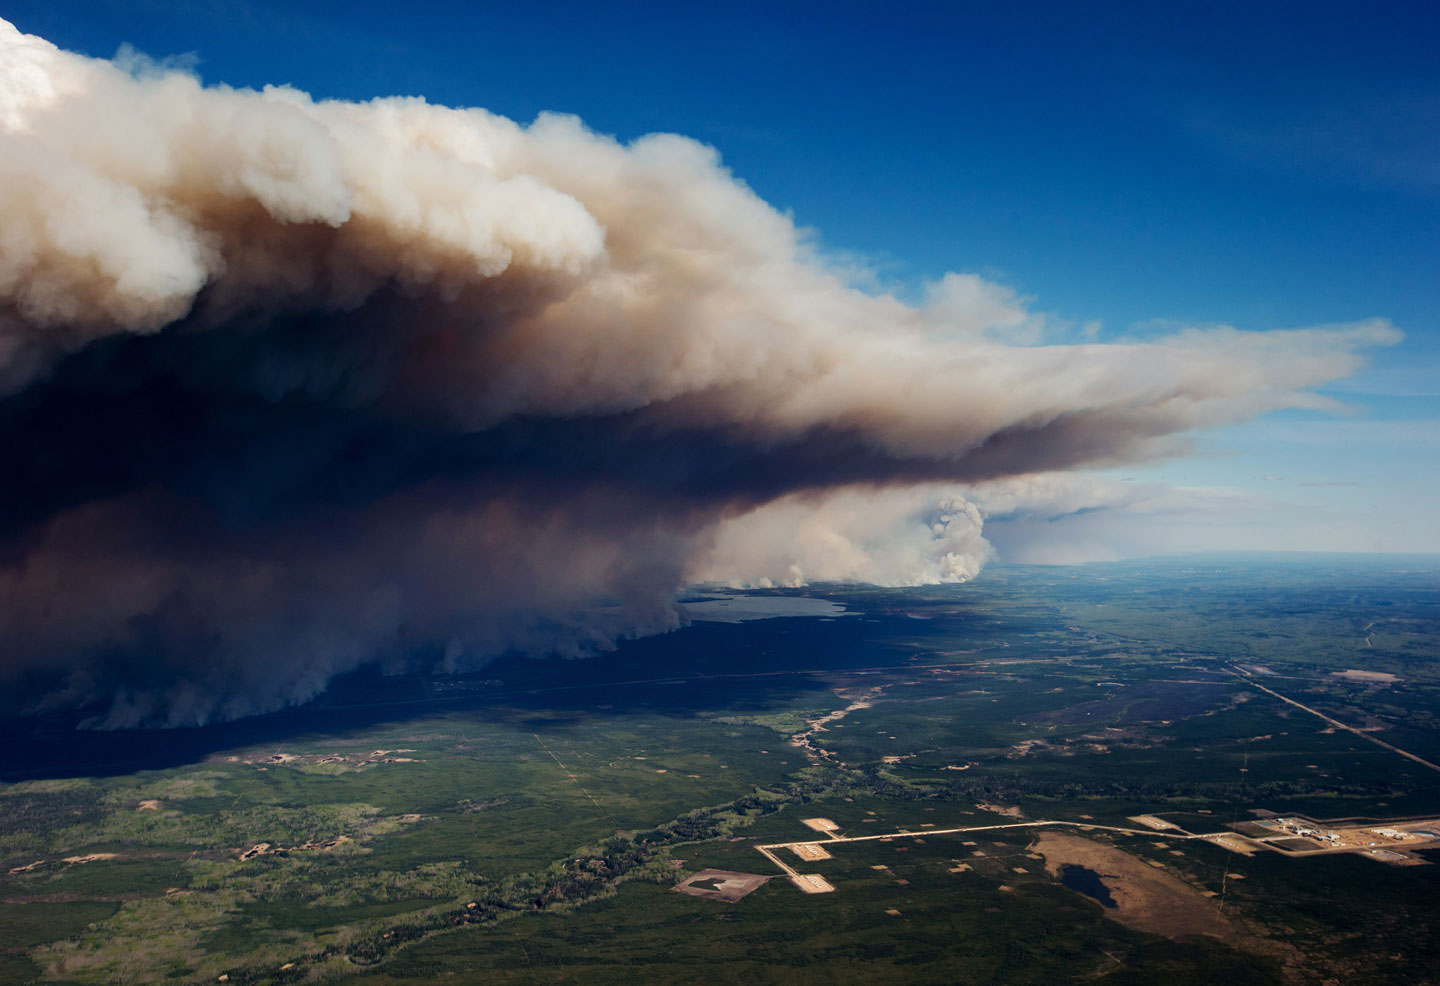 A huge plume of smoke from wildfires burning rises over Fort McMurray in this aerial photograph taken in Alberta, Canada, on Friday, May 6, 2016. The wildfires ravaging Canada's oil hub in northern Alberta have rapidly spread to an area bigger than New York city, prompting the air lift of more than 8,000 evacuees as firefighters seek to salvage critical infrastructure. Photographer: Darryl Dyck/Bloomberg via Getty Images